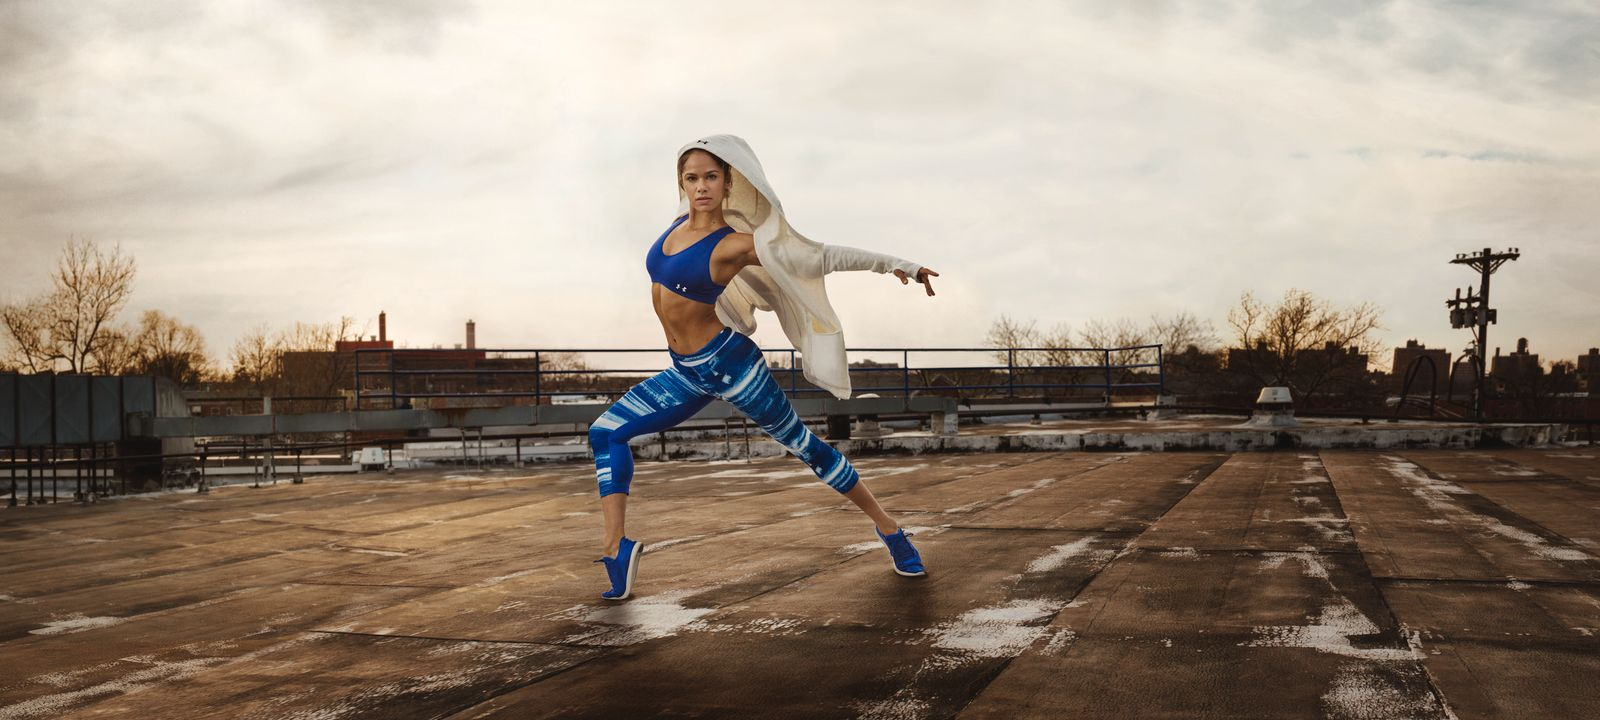 Under Armour, Ballerina Misty Copeland